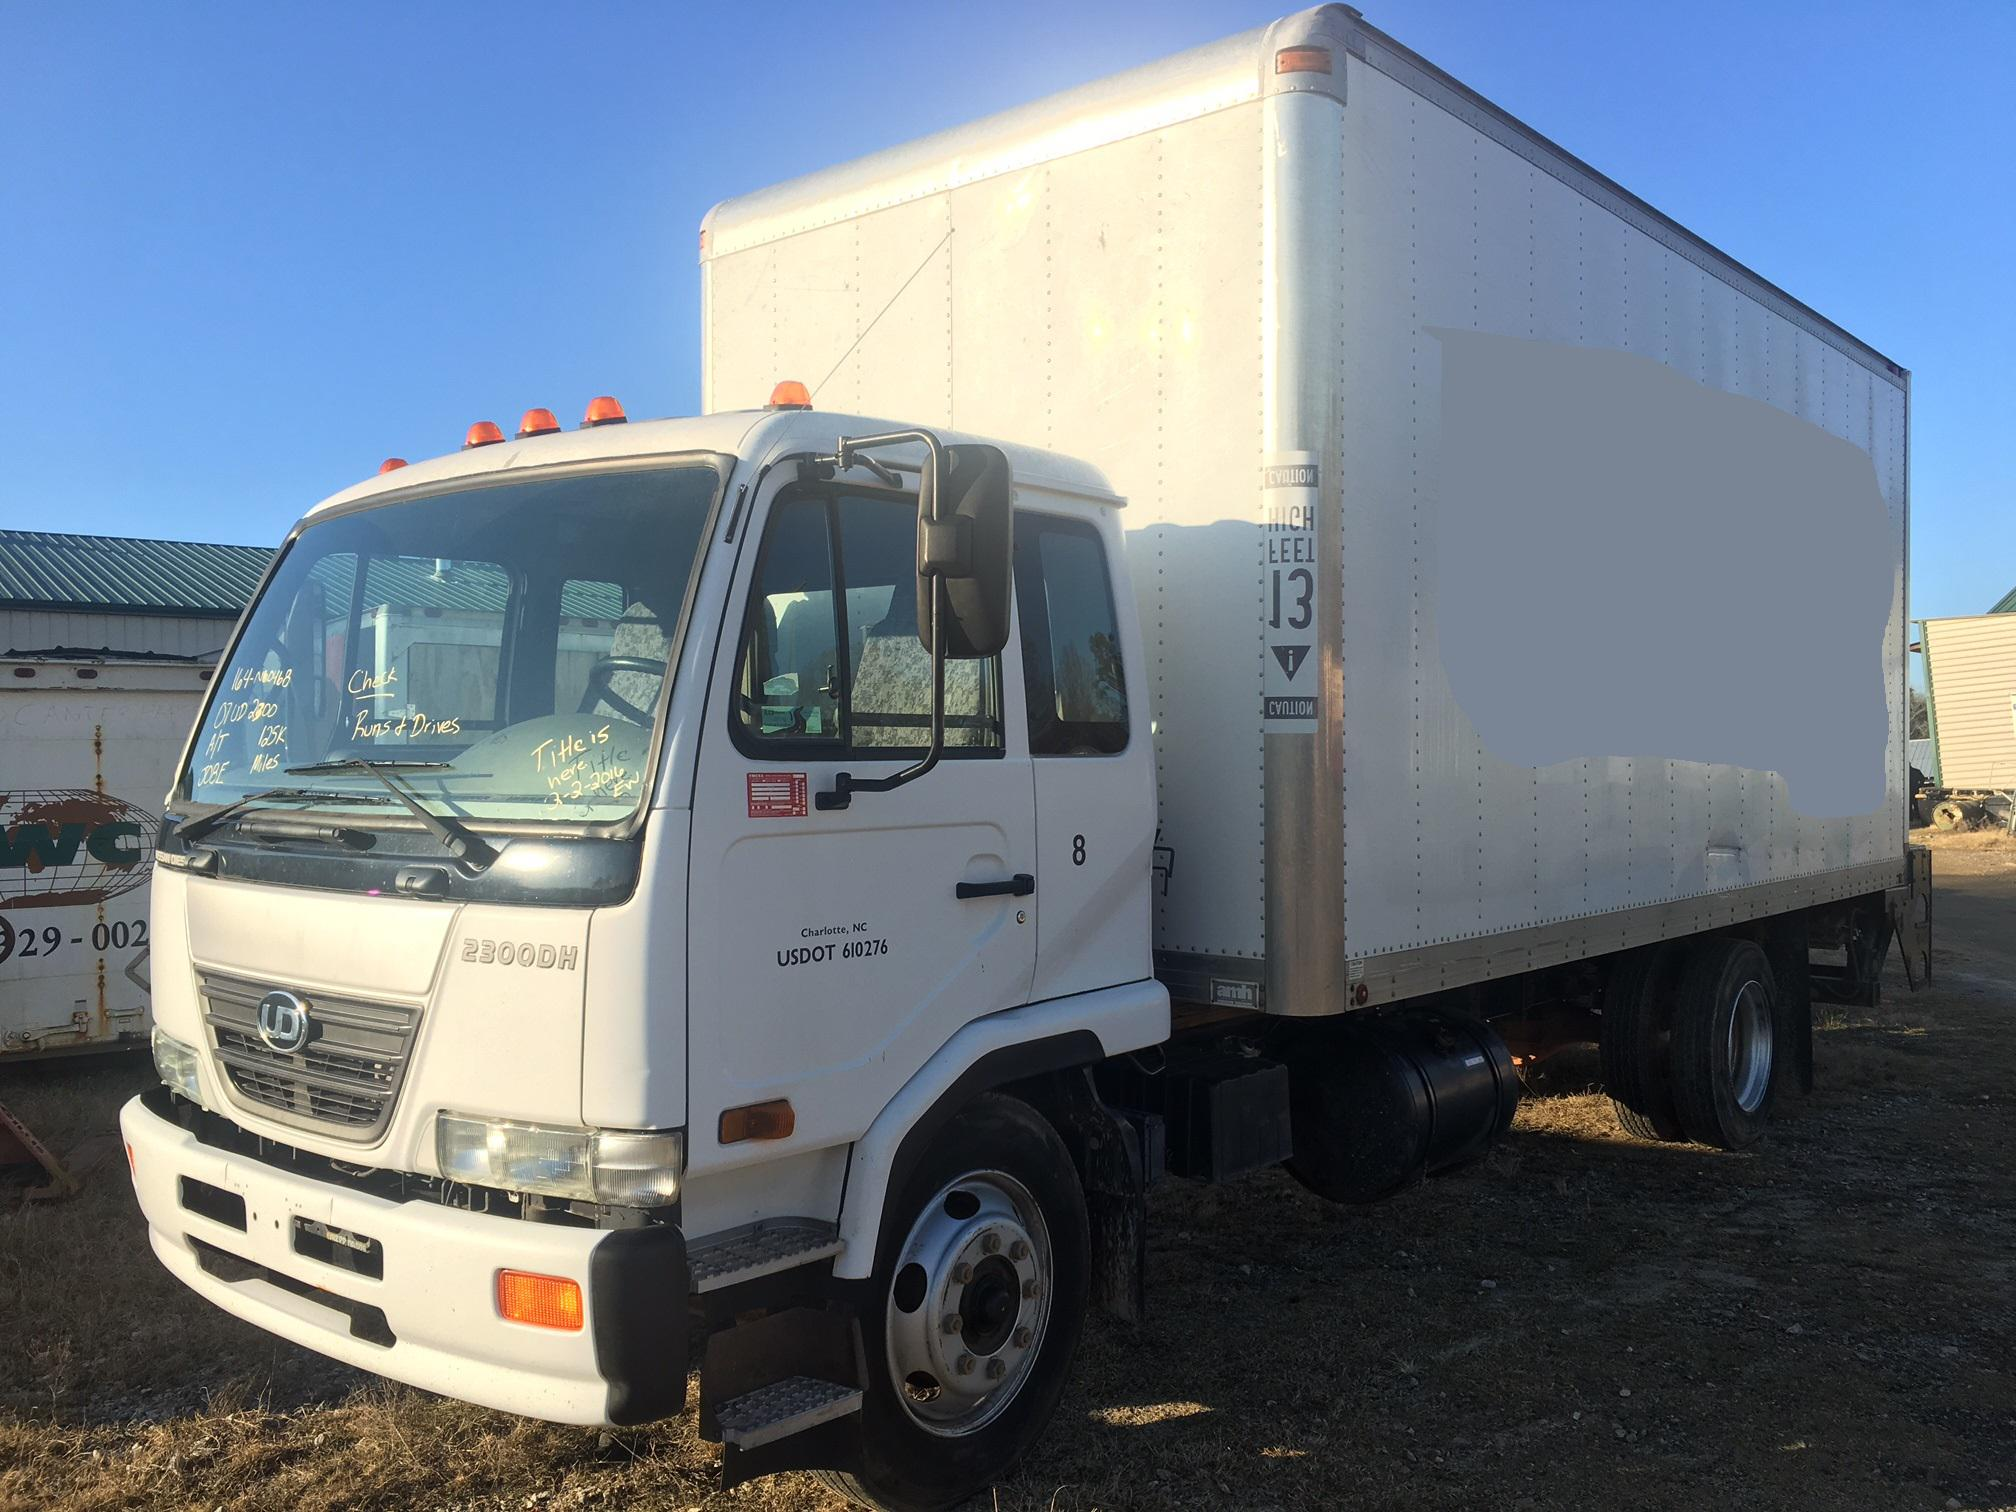 2010 nissan ud 2300 lp isuzu npr nrr truck parts busbee. Black Bedroom Furniture Sets. Home Design Ideas